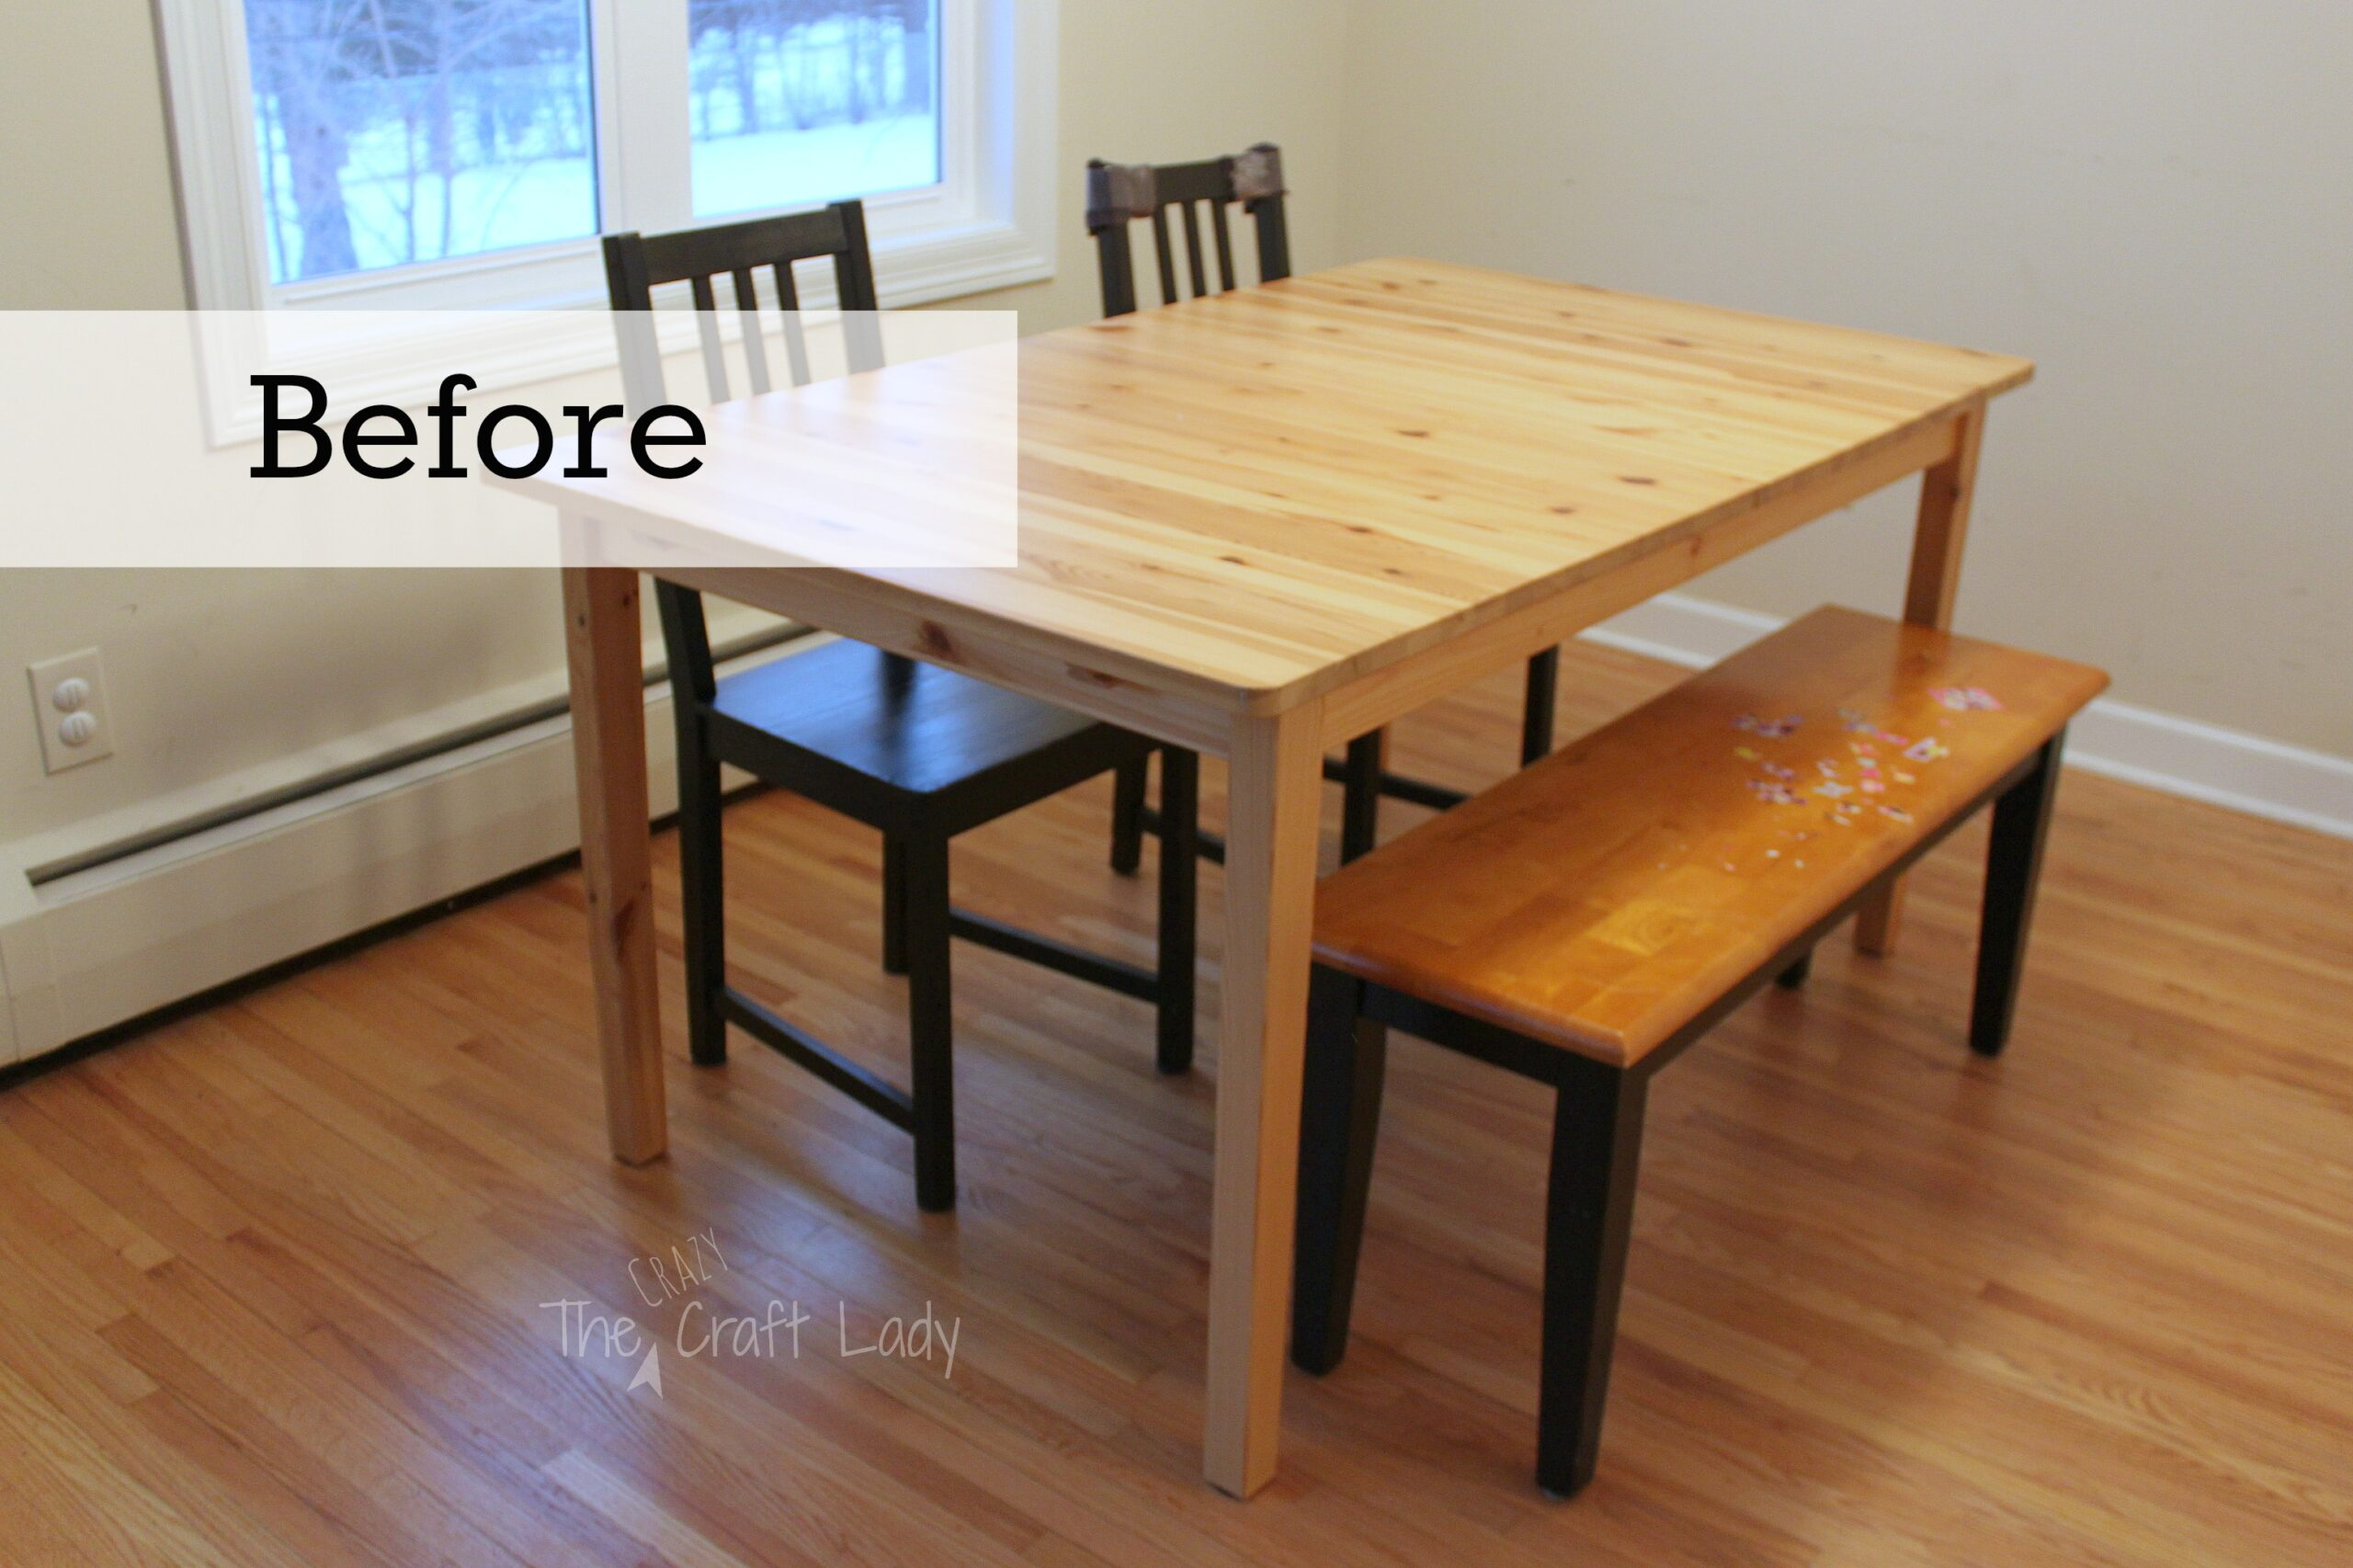 48 Best Chair Hire From Pollen4hire Images On Pinterest: DIY Concrete Dining Table Top And Dining Set Makeover